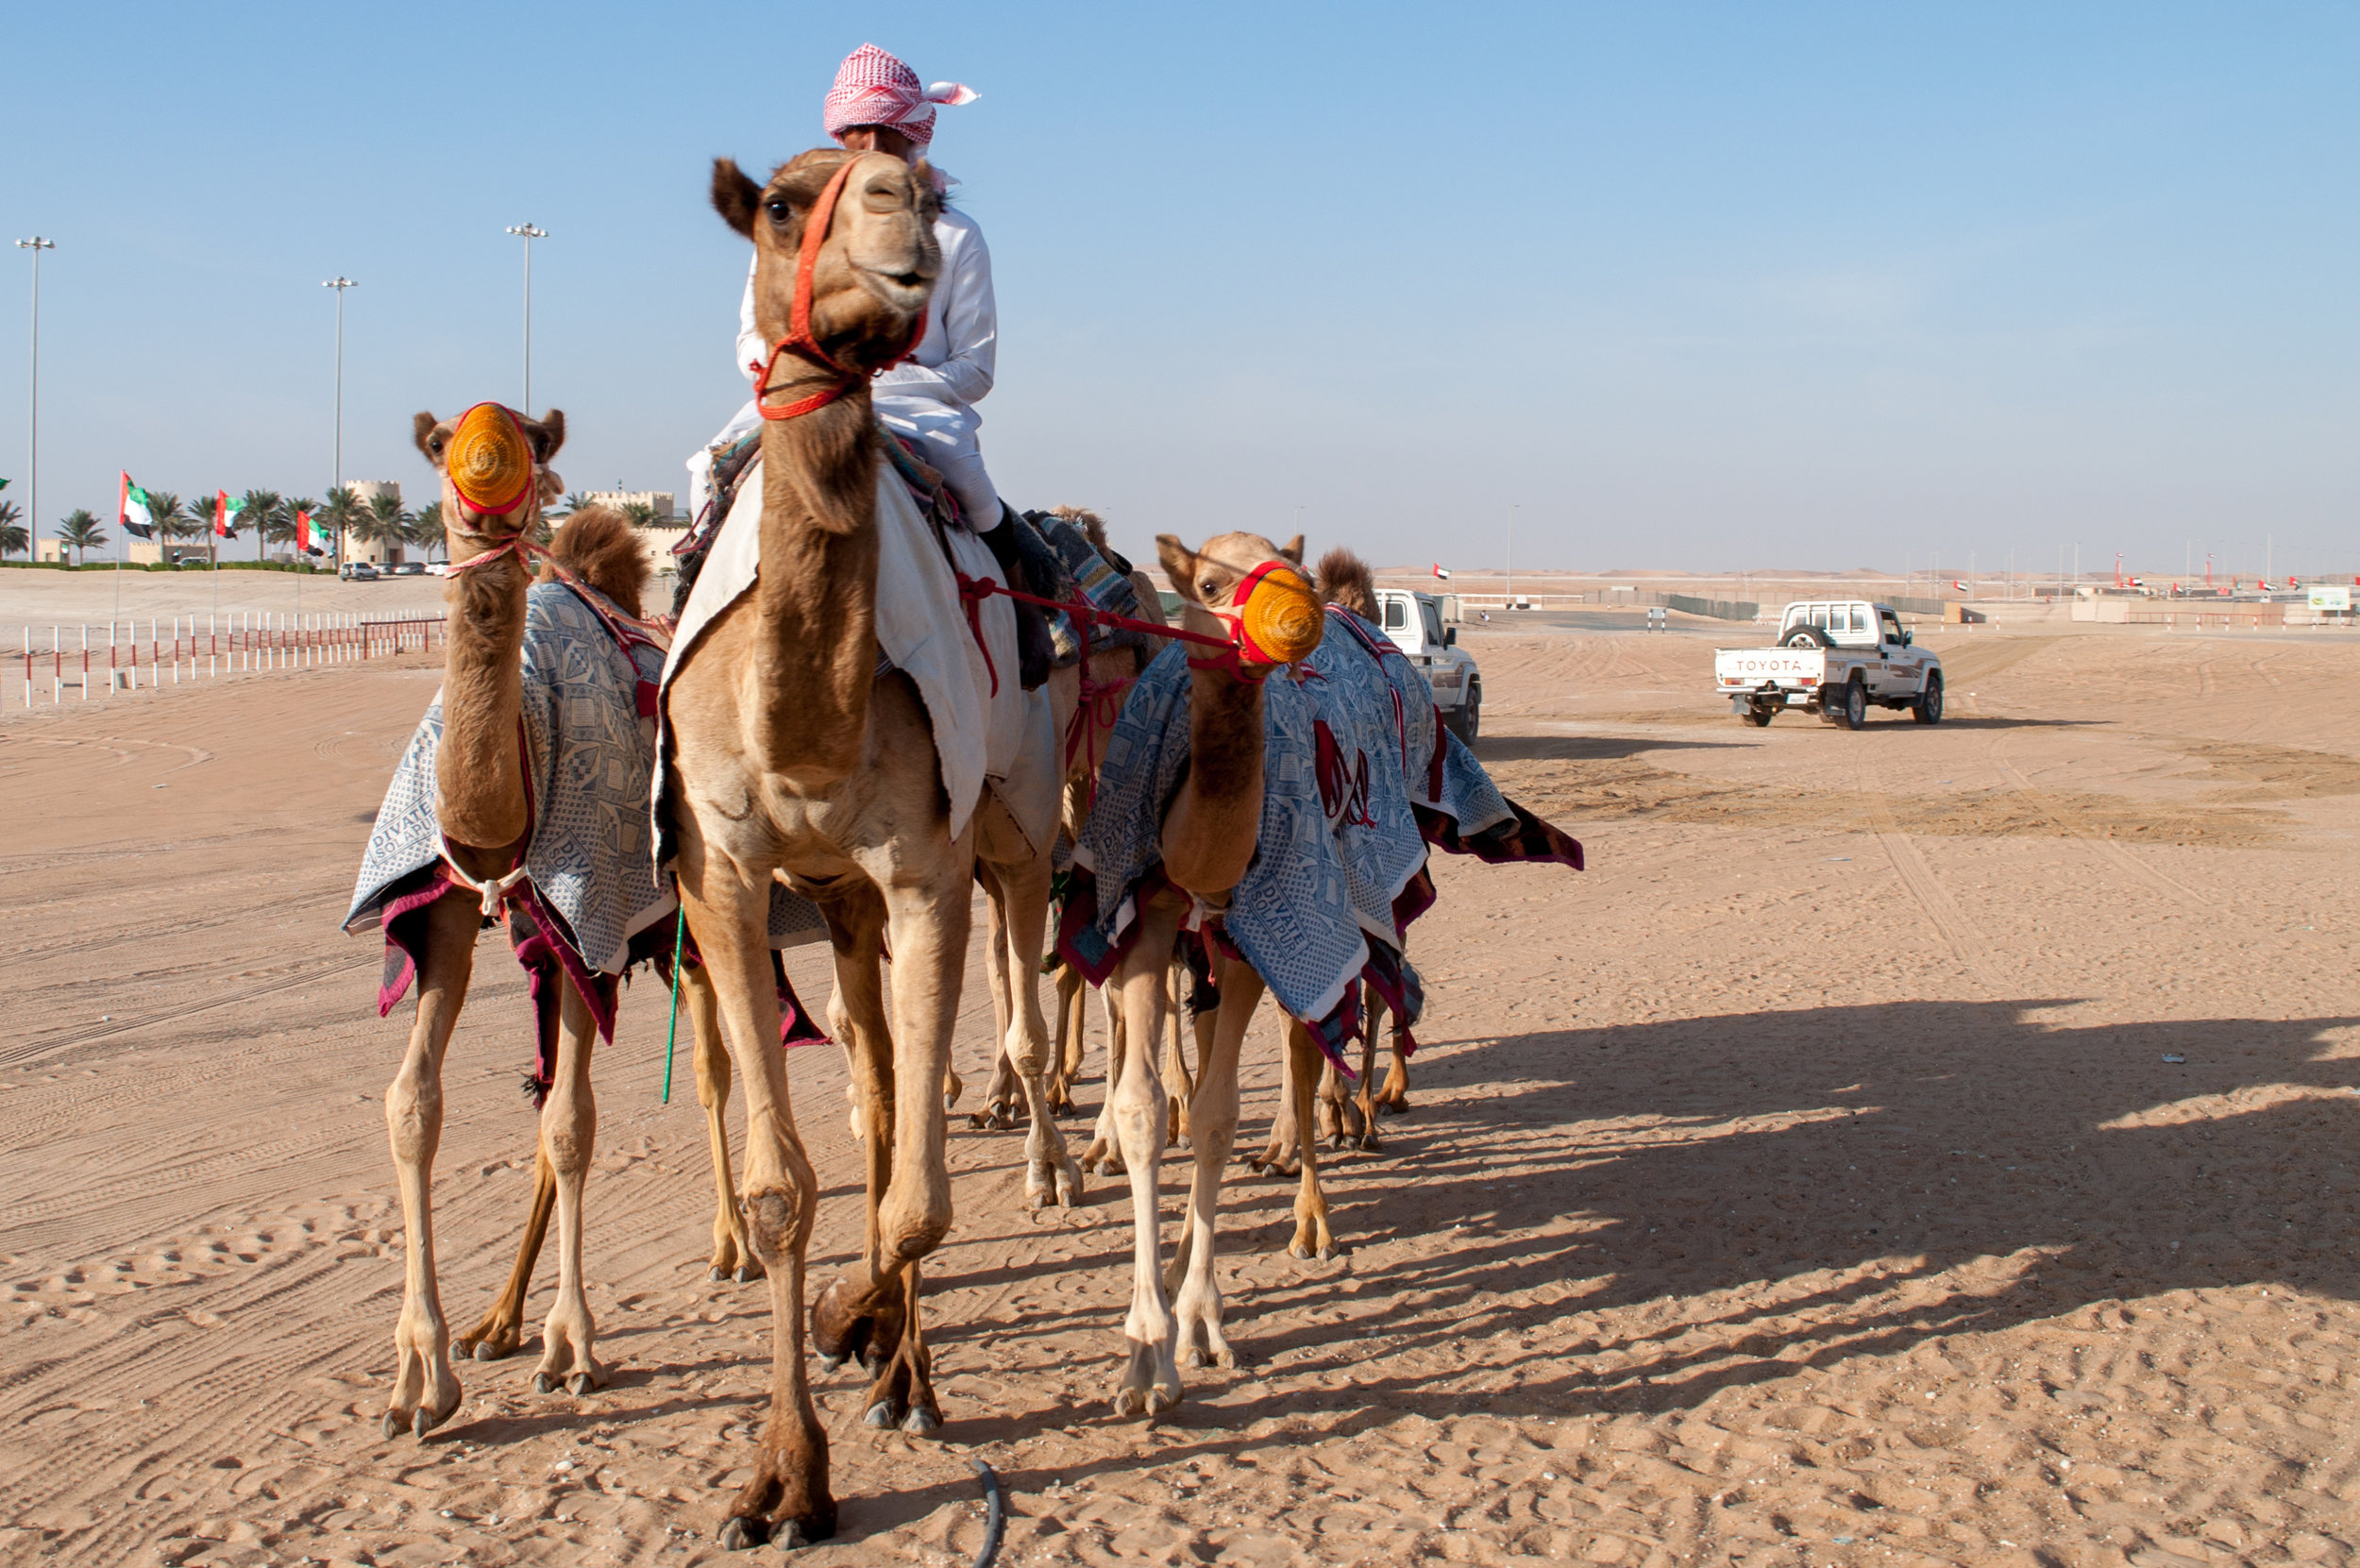 Looking for the most beautiful camels in the region